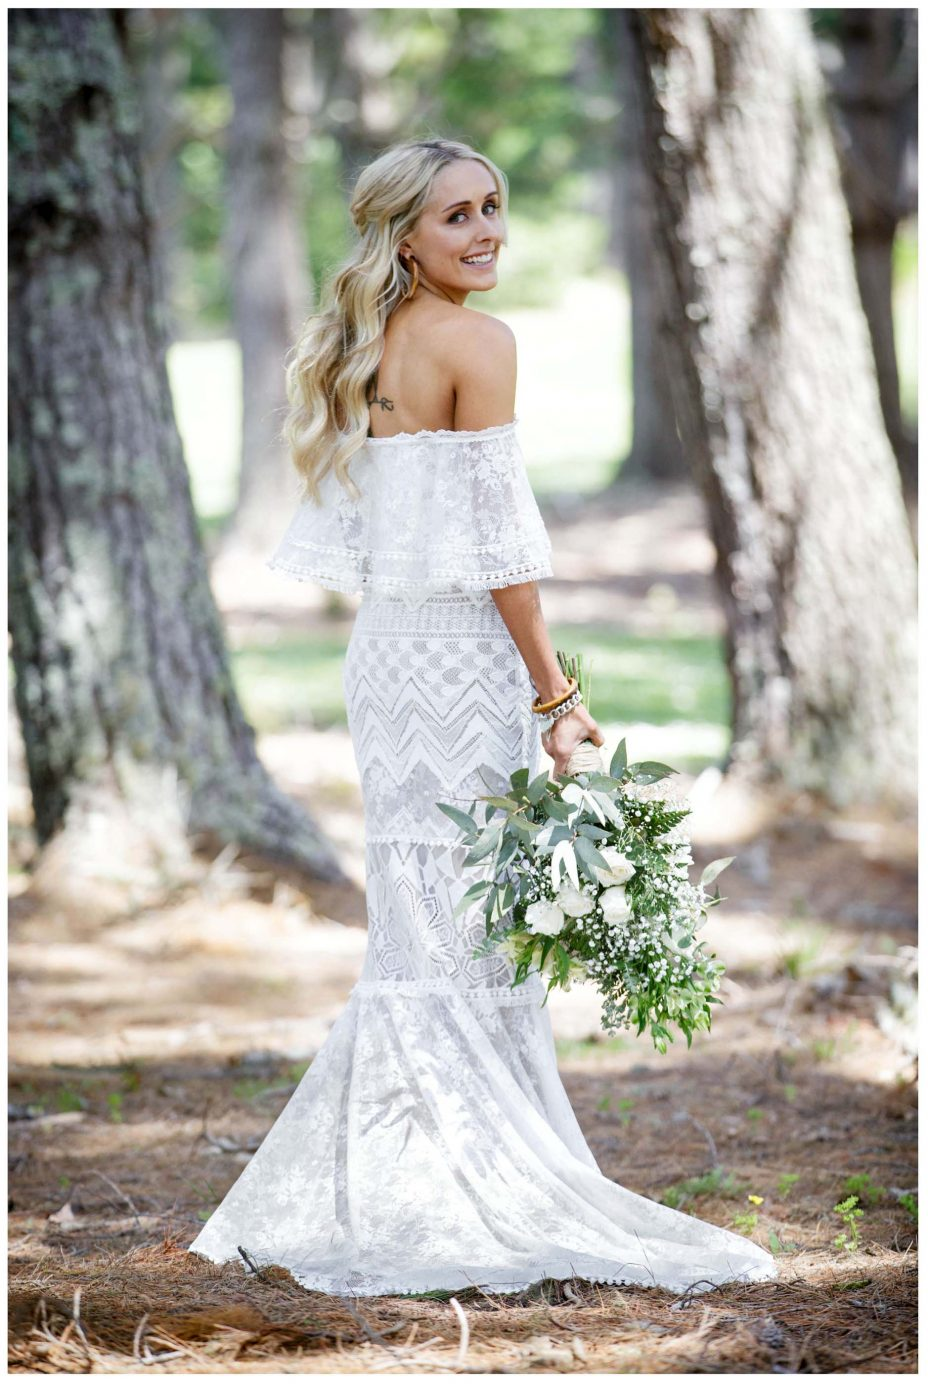 Australian Bride in lace white wedding dress with waterfall flower bouquet, Leaf and Honey flowers, Northridege Country Estate Wedding Murawai Beech